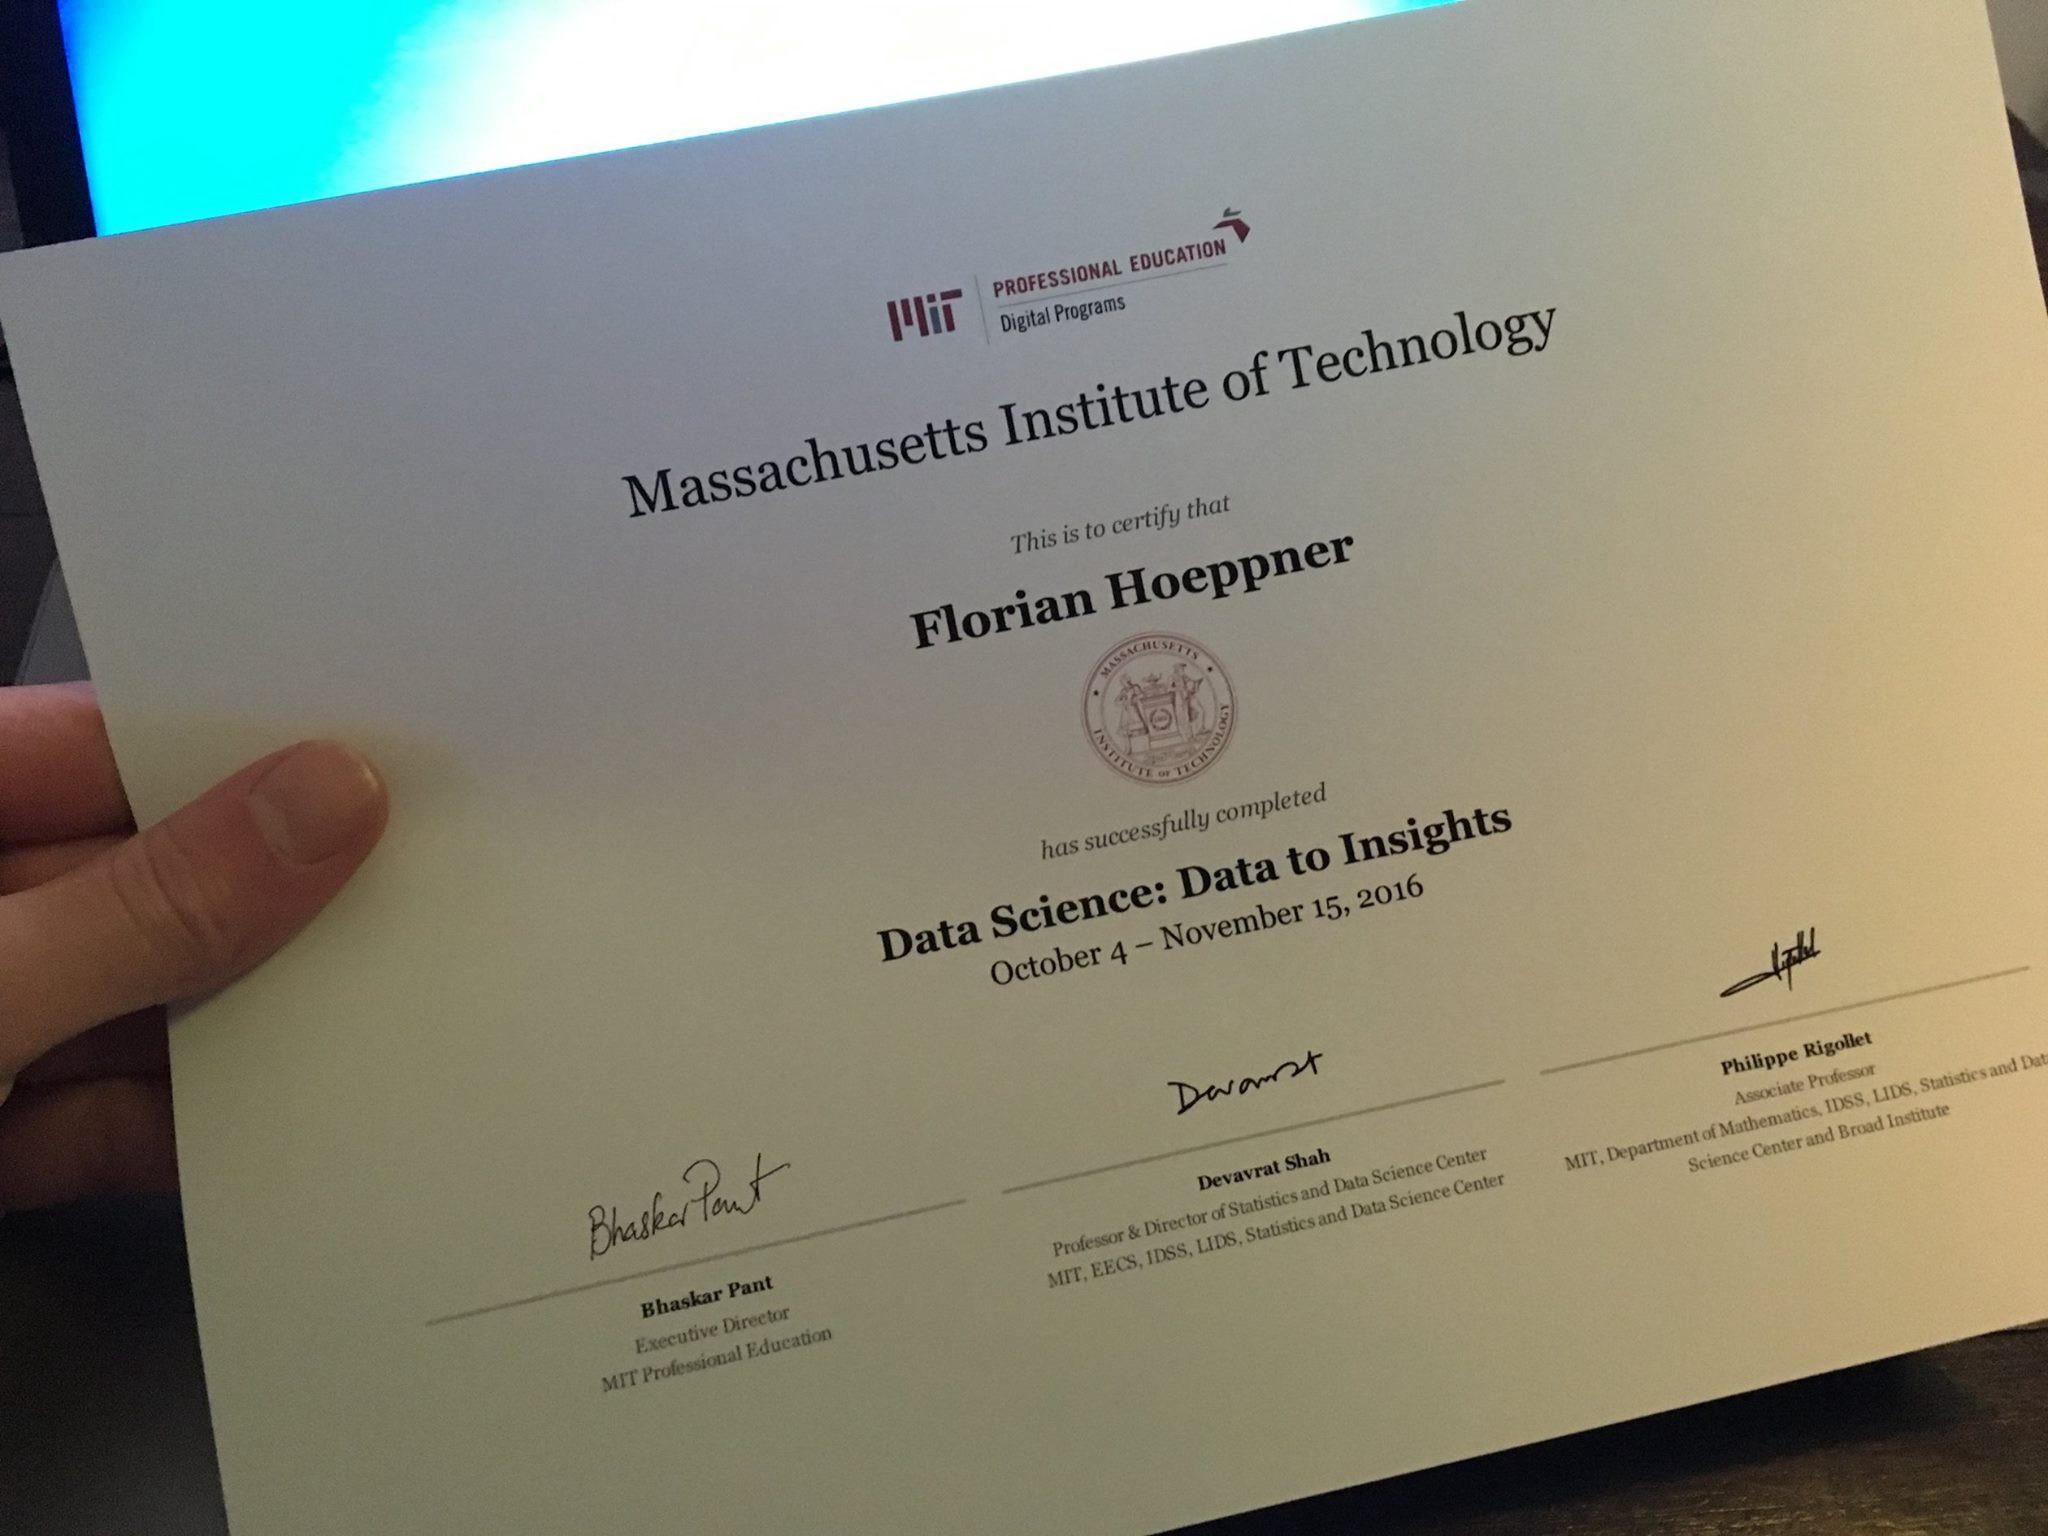 What I Learned From The Mit Professional Education Program